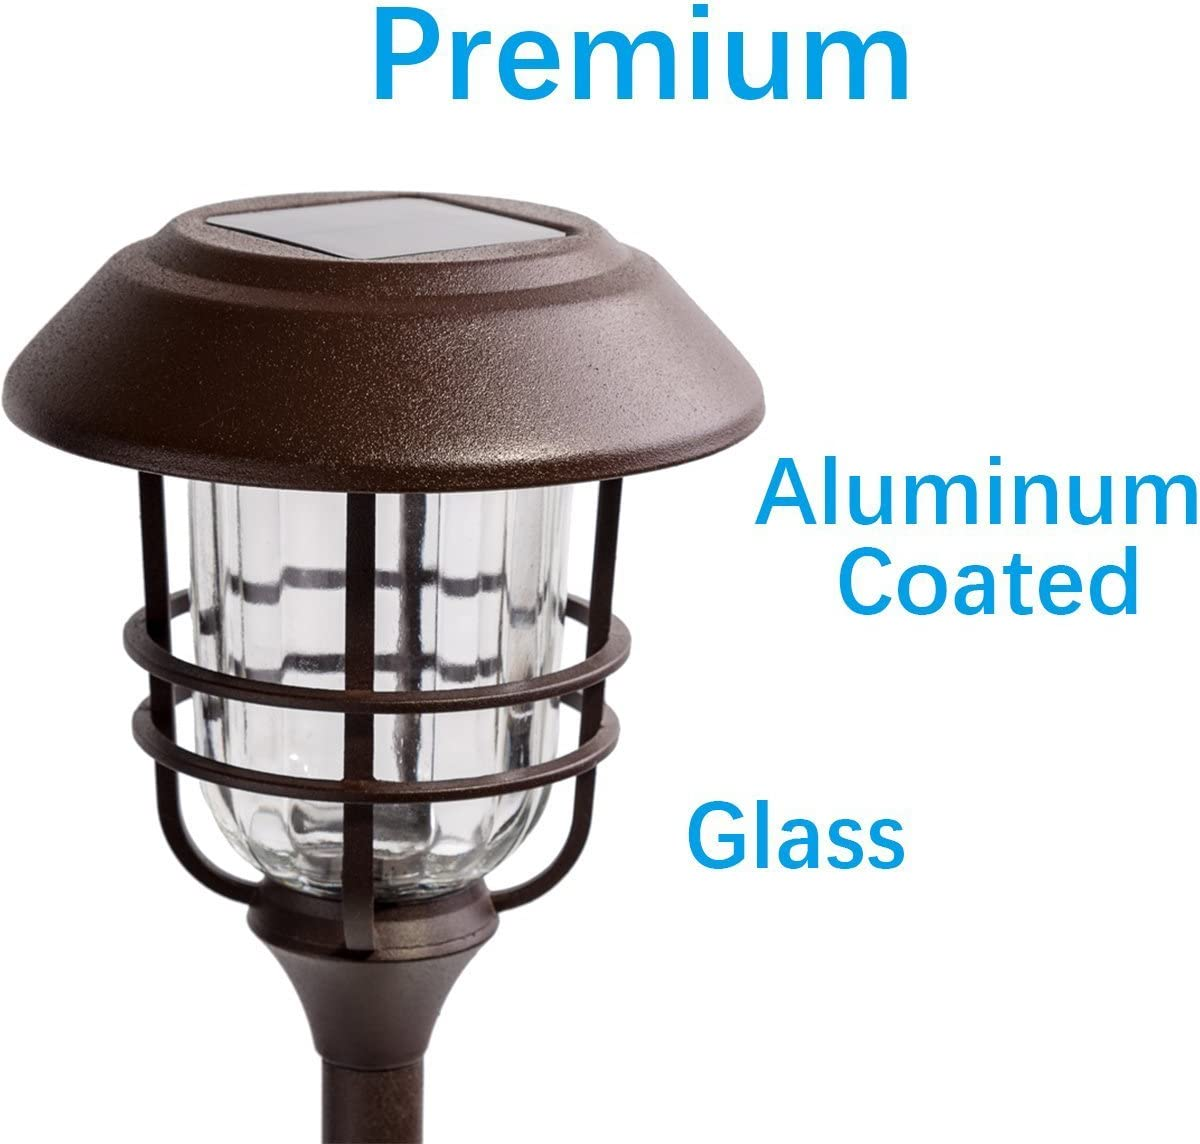 High Lumen Output per LED Easy No Wire Installation GIGALUMI 4 Pack Outdoor Solar Lights Glass and Powder Coated Cast Aluminum Metal Path Lights